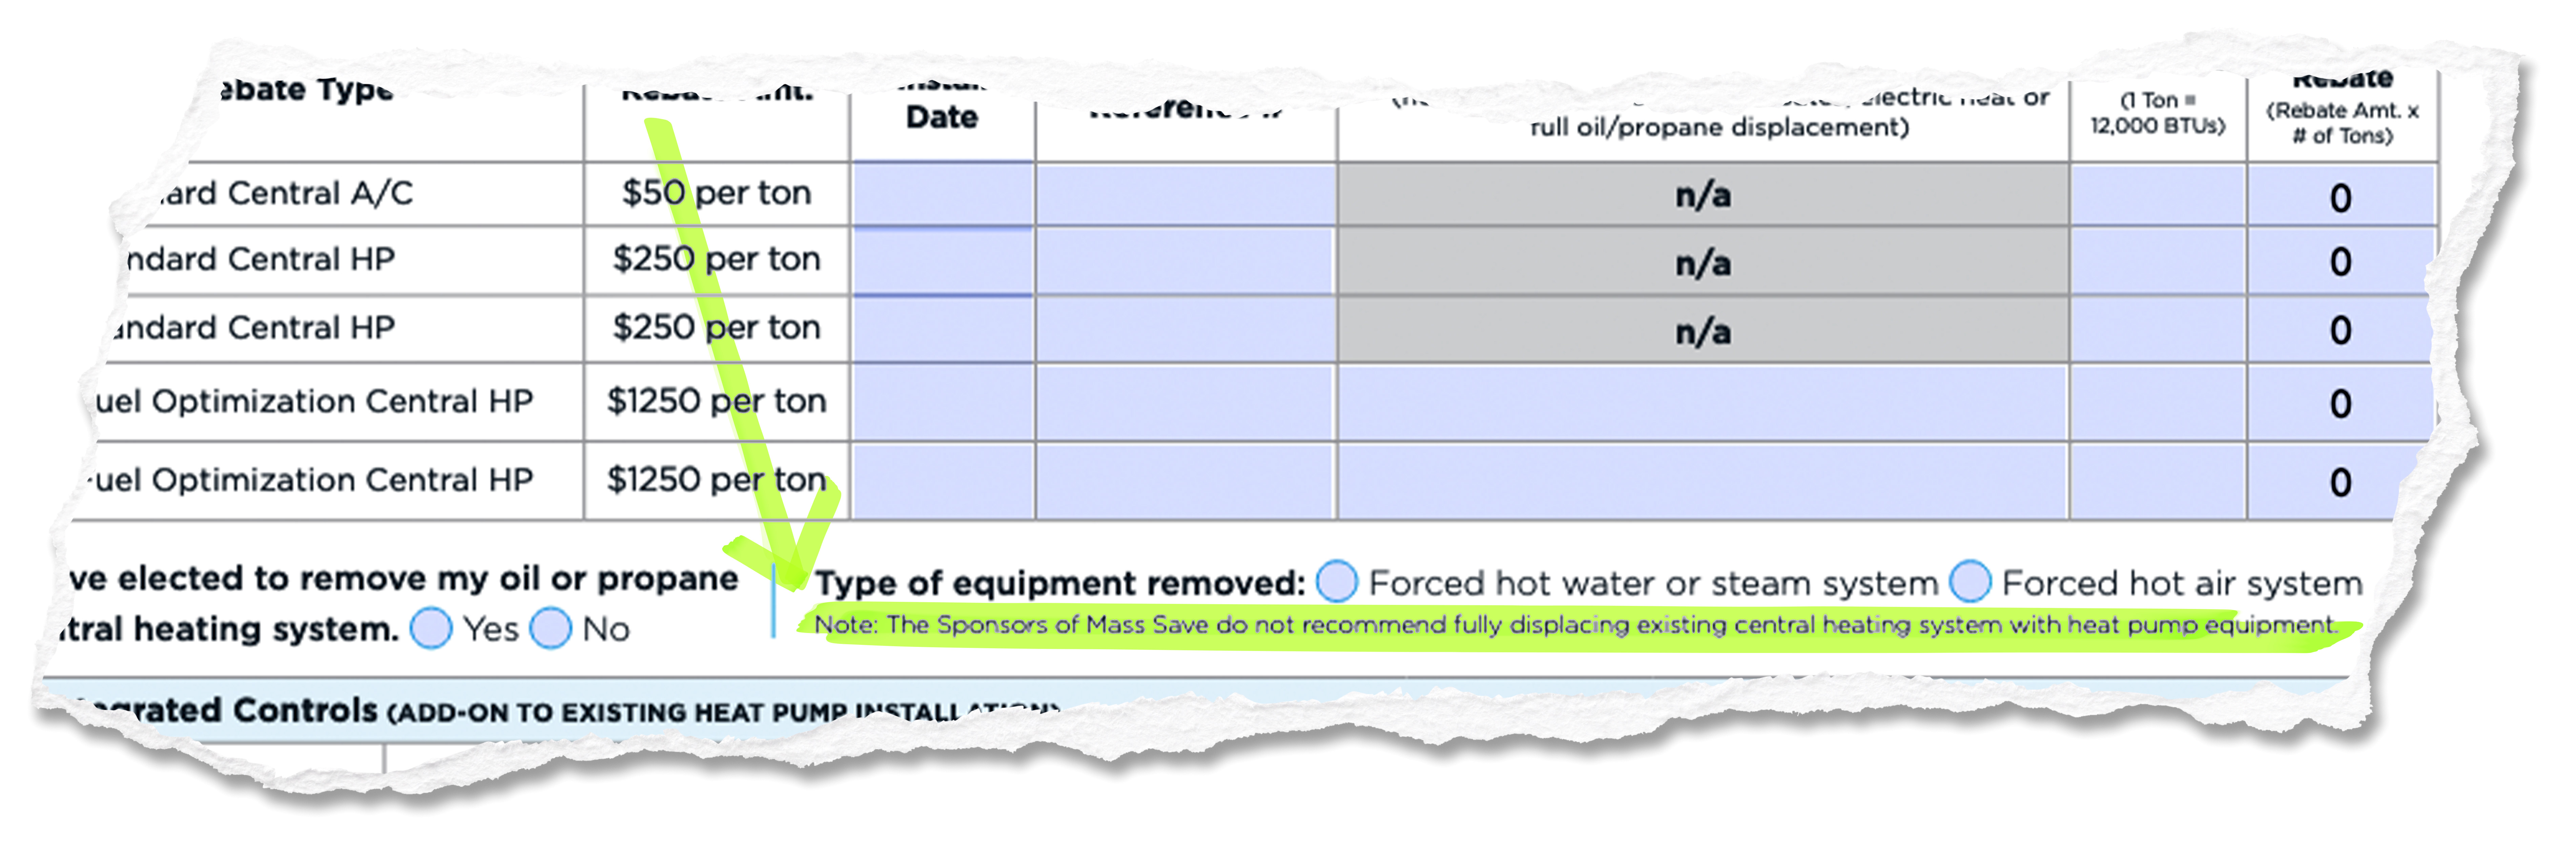 Highlighted area from the 2021 residential central A/C & central heat pump rebate form.